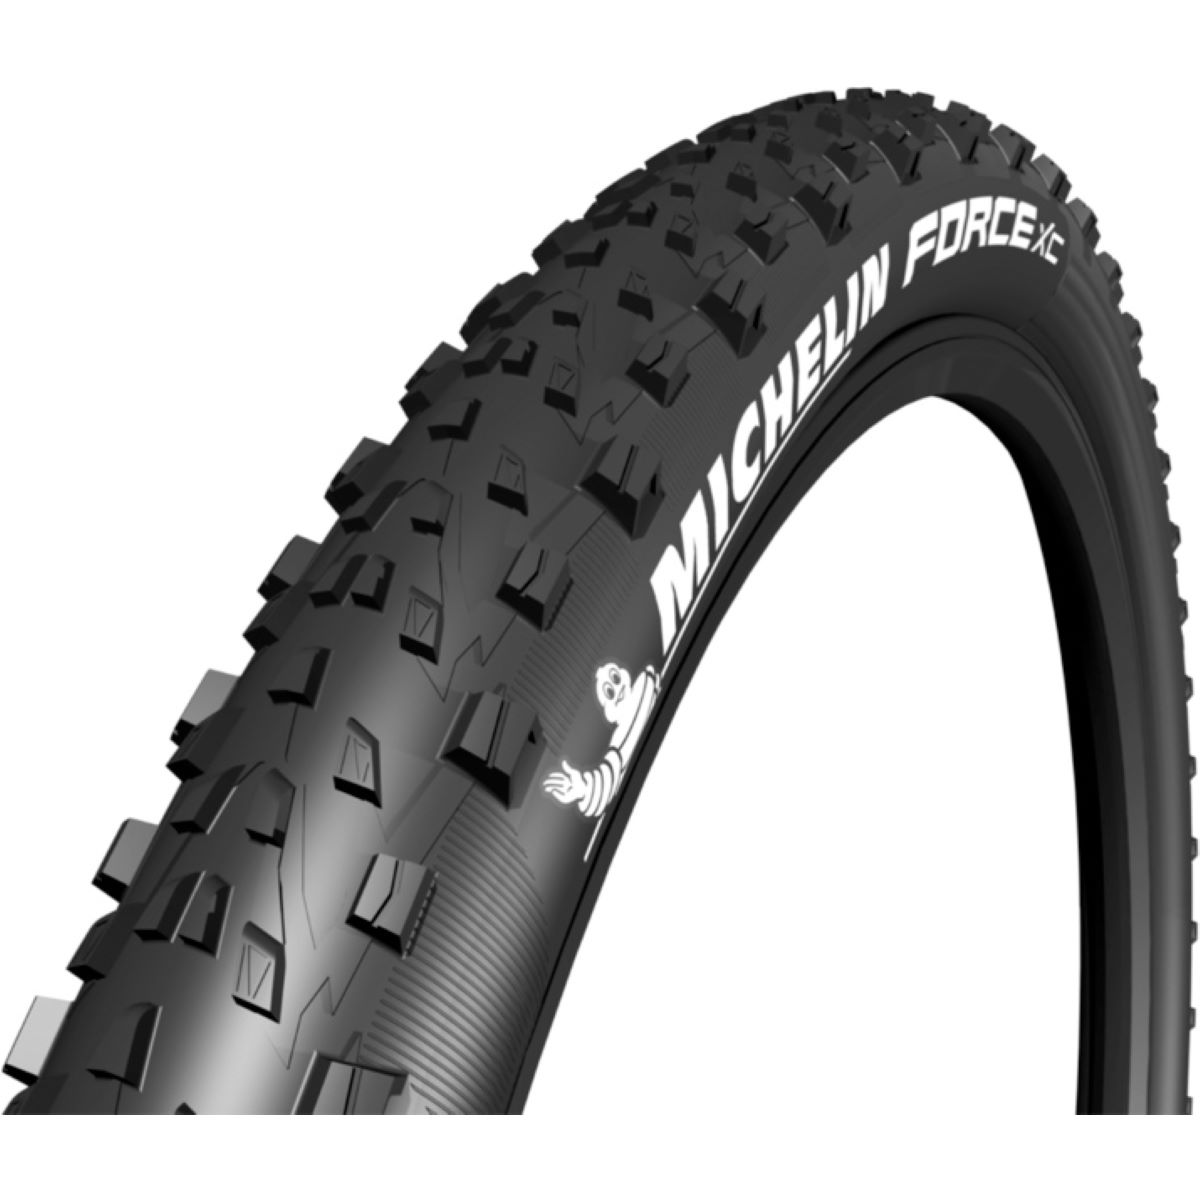 Pneu VTT Michelin Force XC Competition - 2.1' 27.5' Noir Pneus